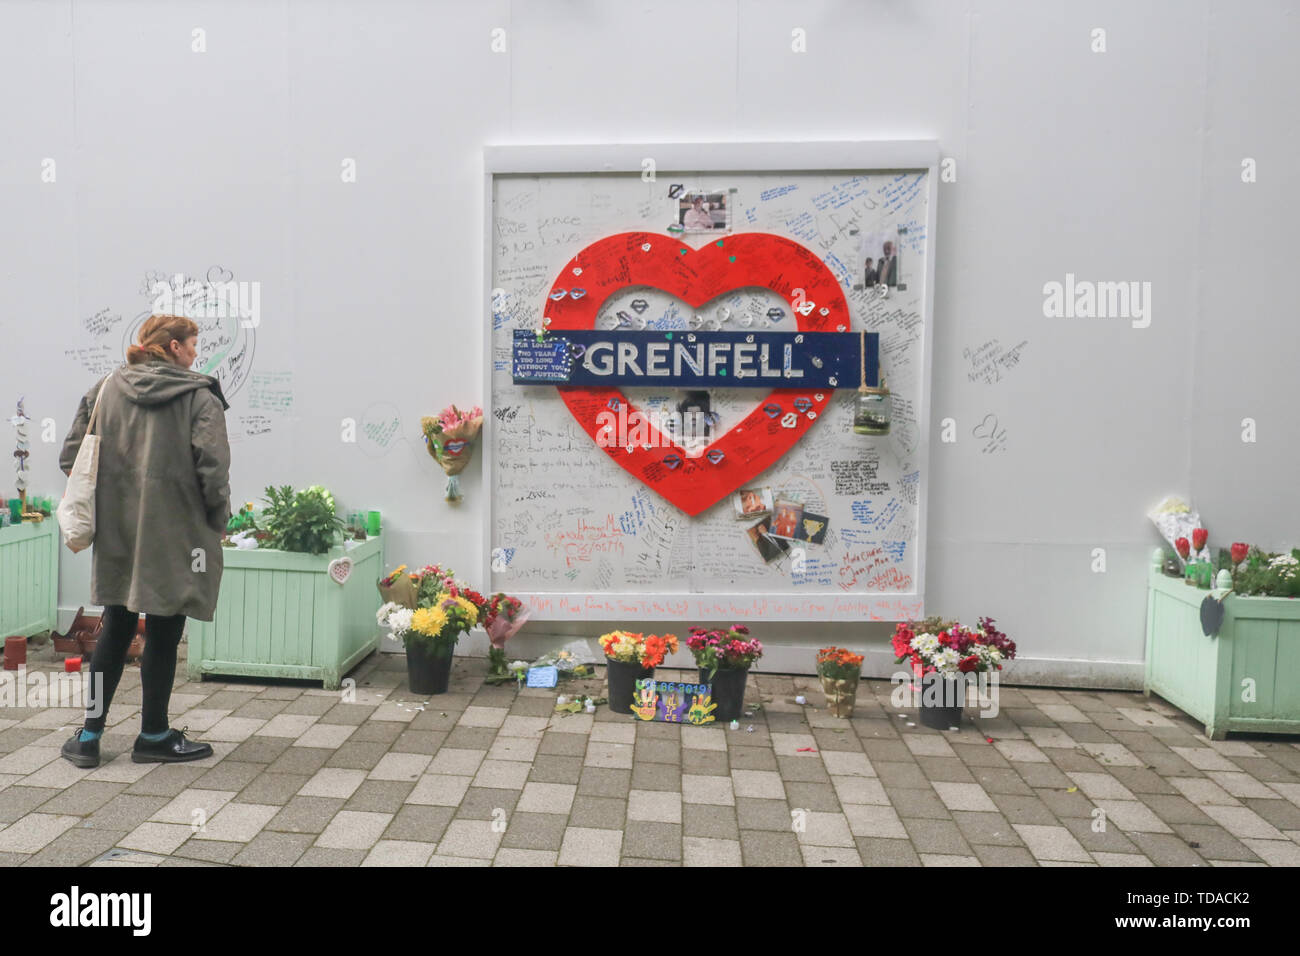 London, UK. 13th June, 2019. A member of the public views the memorial to the Grenfell fire victims on the second anniversary of the devastating inferno fire which in the residential tower block in West London on 14 June 2017 Credit: amer ghazzal/Alamy Live News - Stock Image